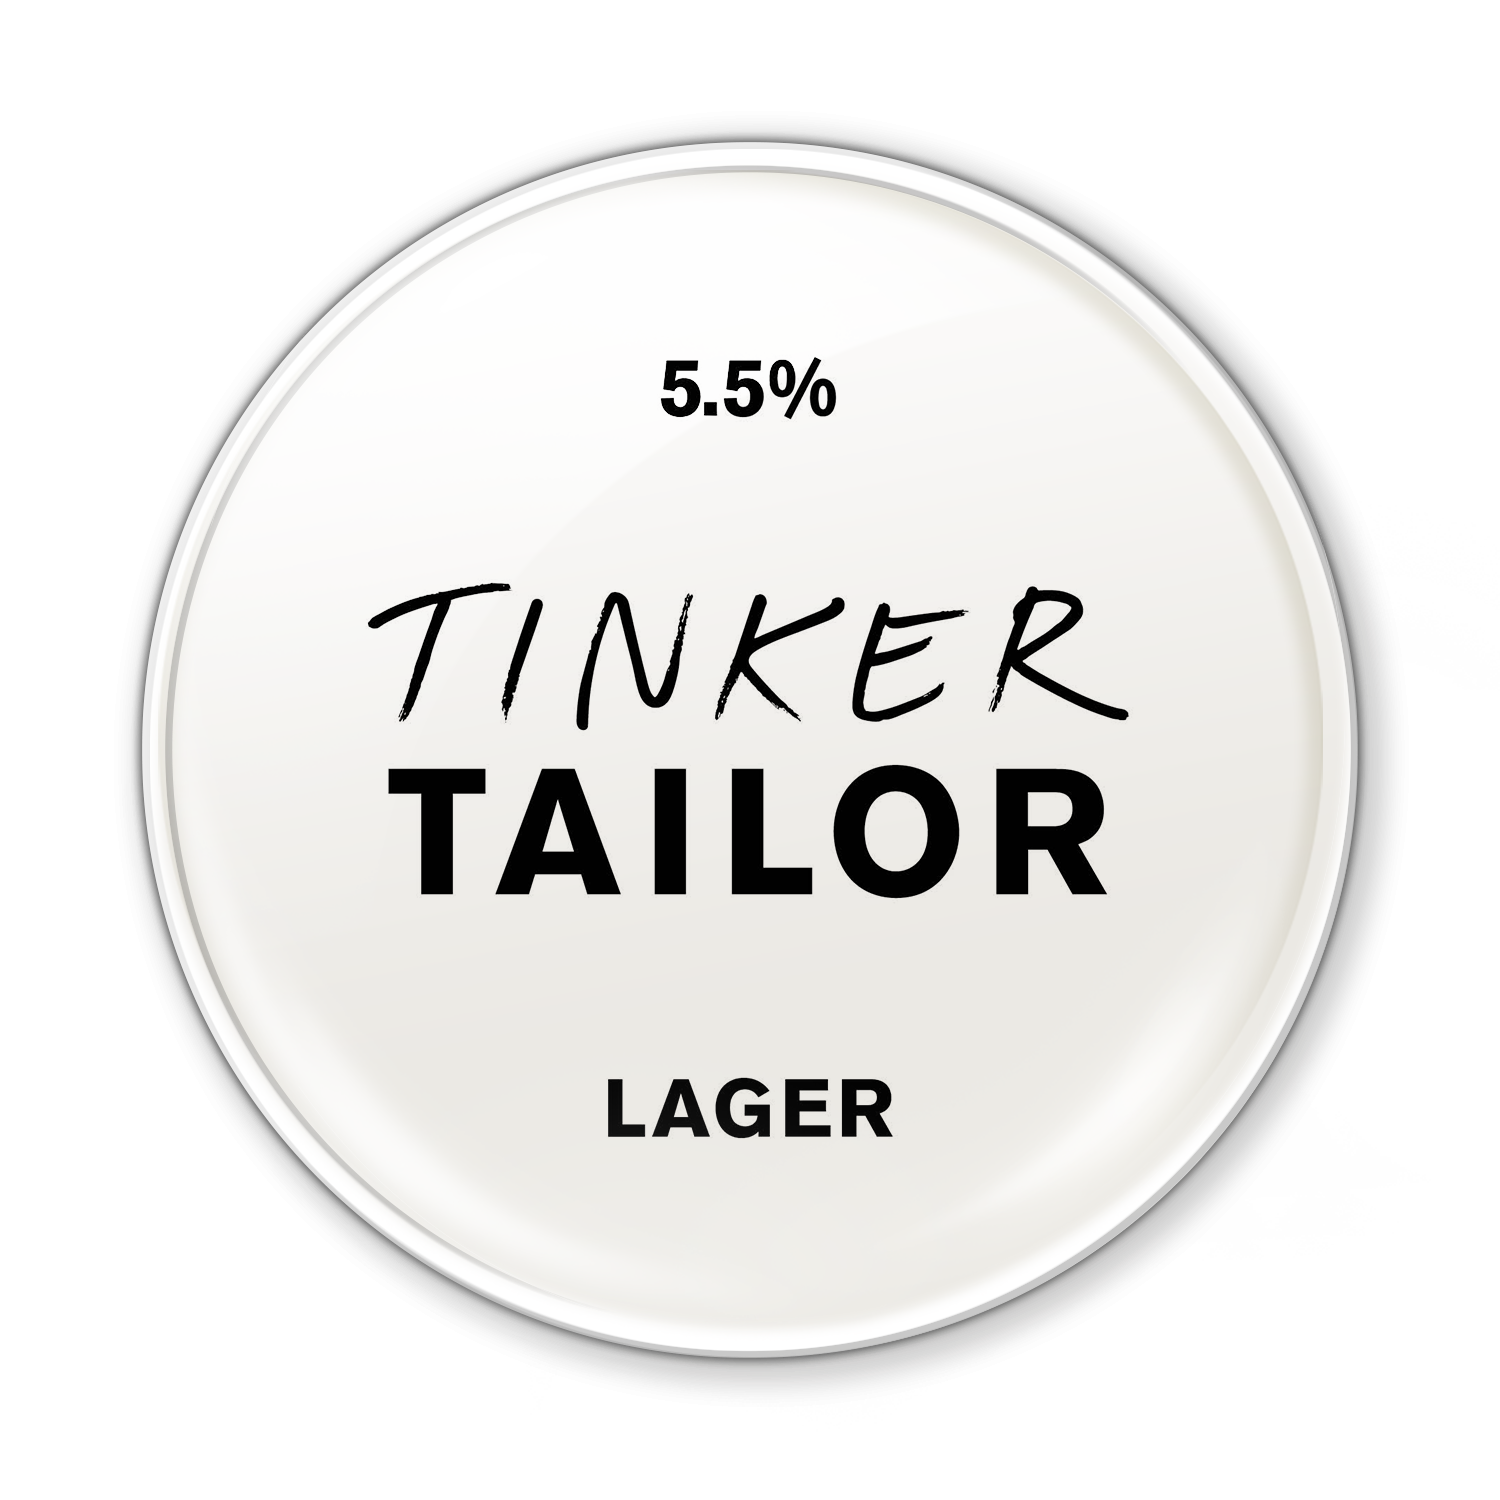 Lager - Our Lager is tailored true to style. Its crystal clear, pale colour hints at the tantalising tastes of this flavourful classic. We've gone light on the hops to create an easy-drinking beer. This is what craft lager is all about.Serve with sushi, or grilled lemon chicken.5.5%